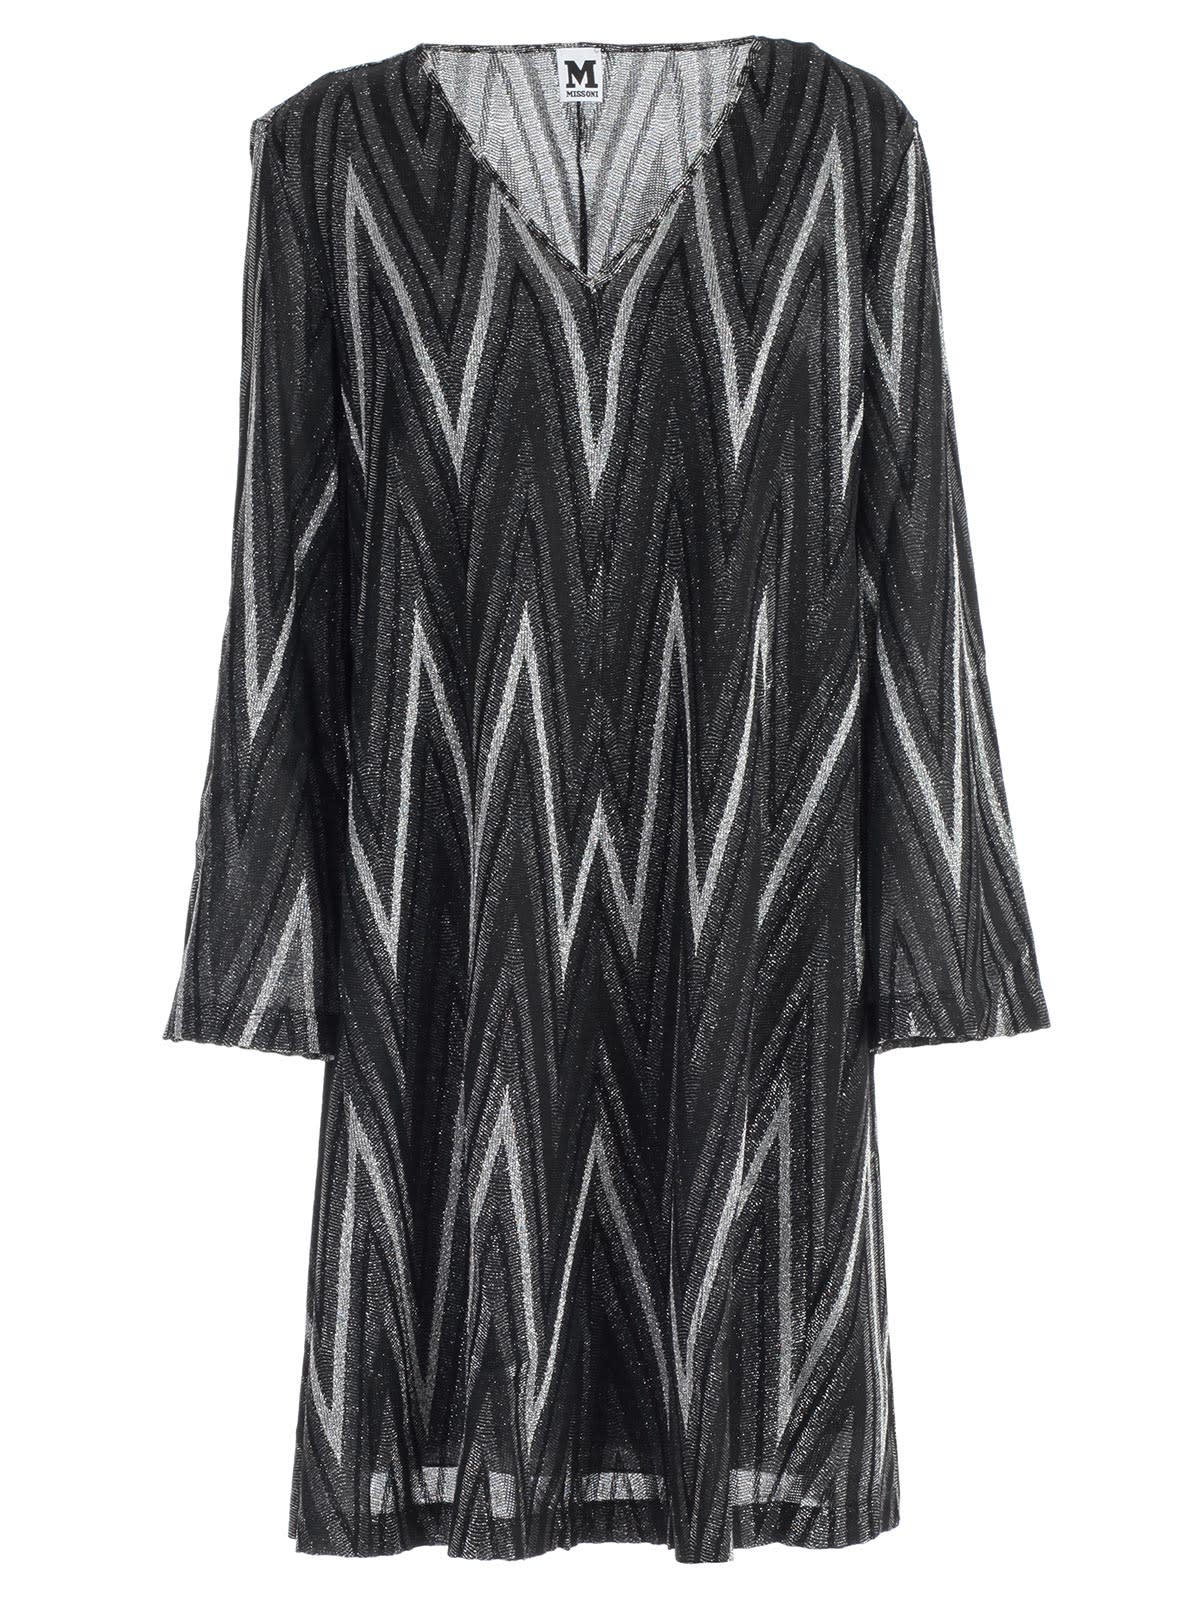 M Missoni Dress L & s Jersey Lurex